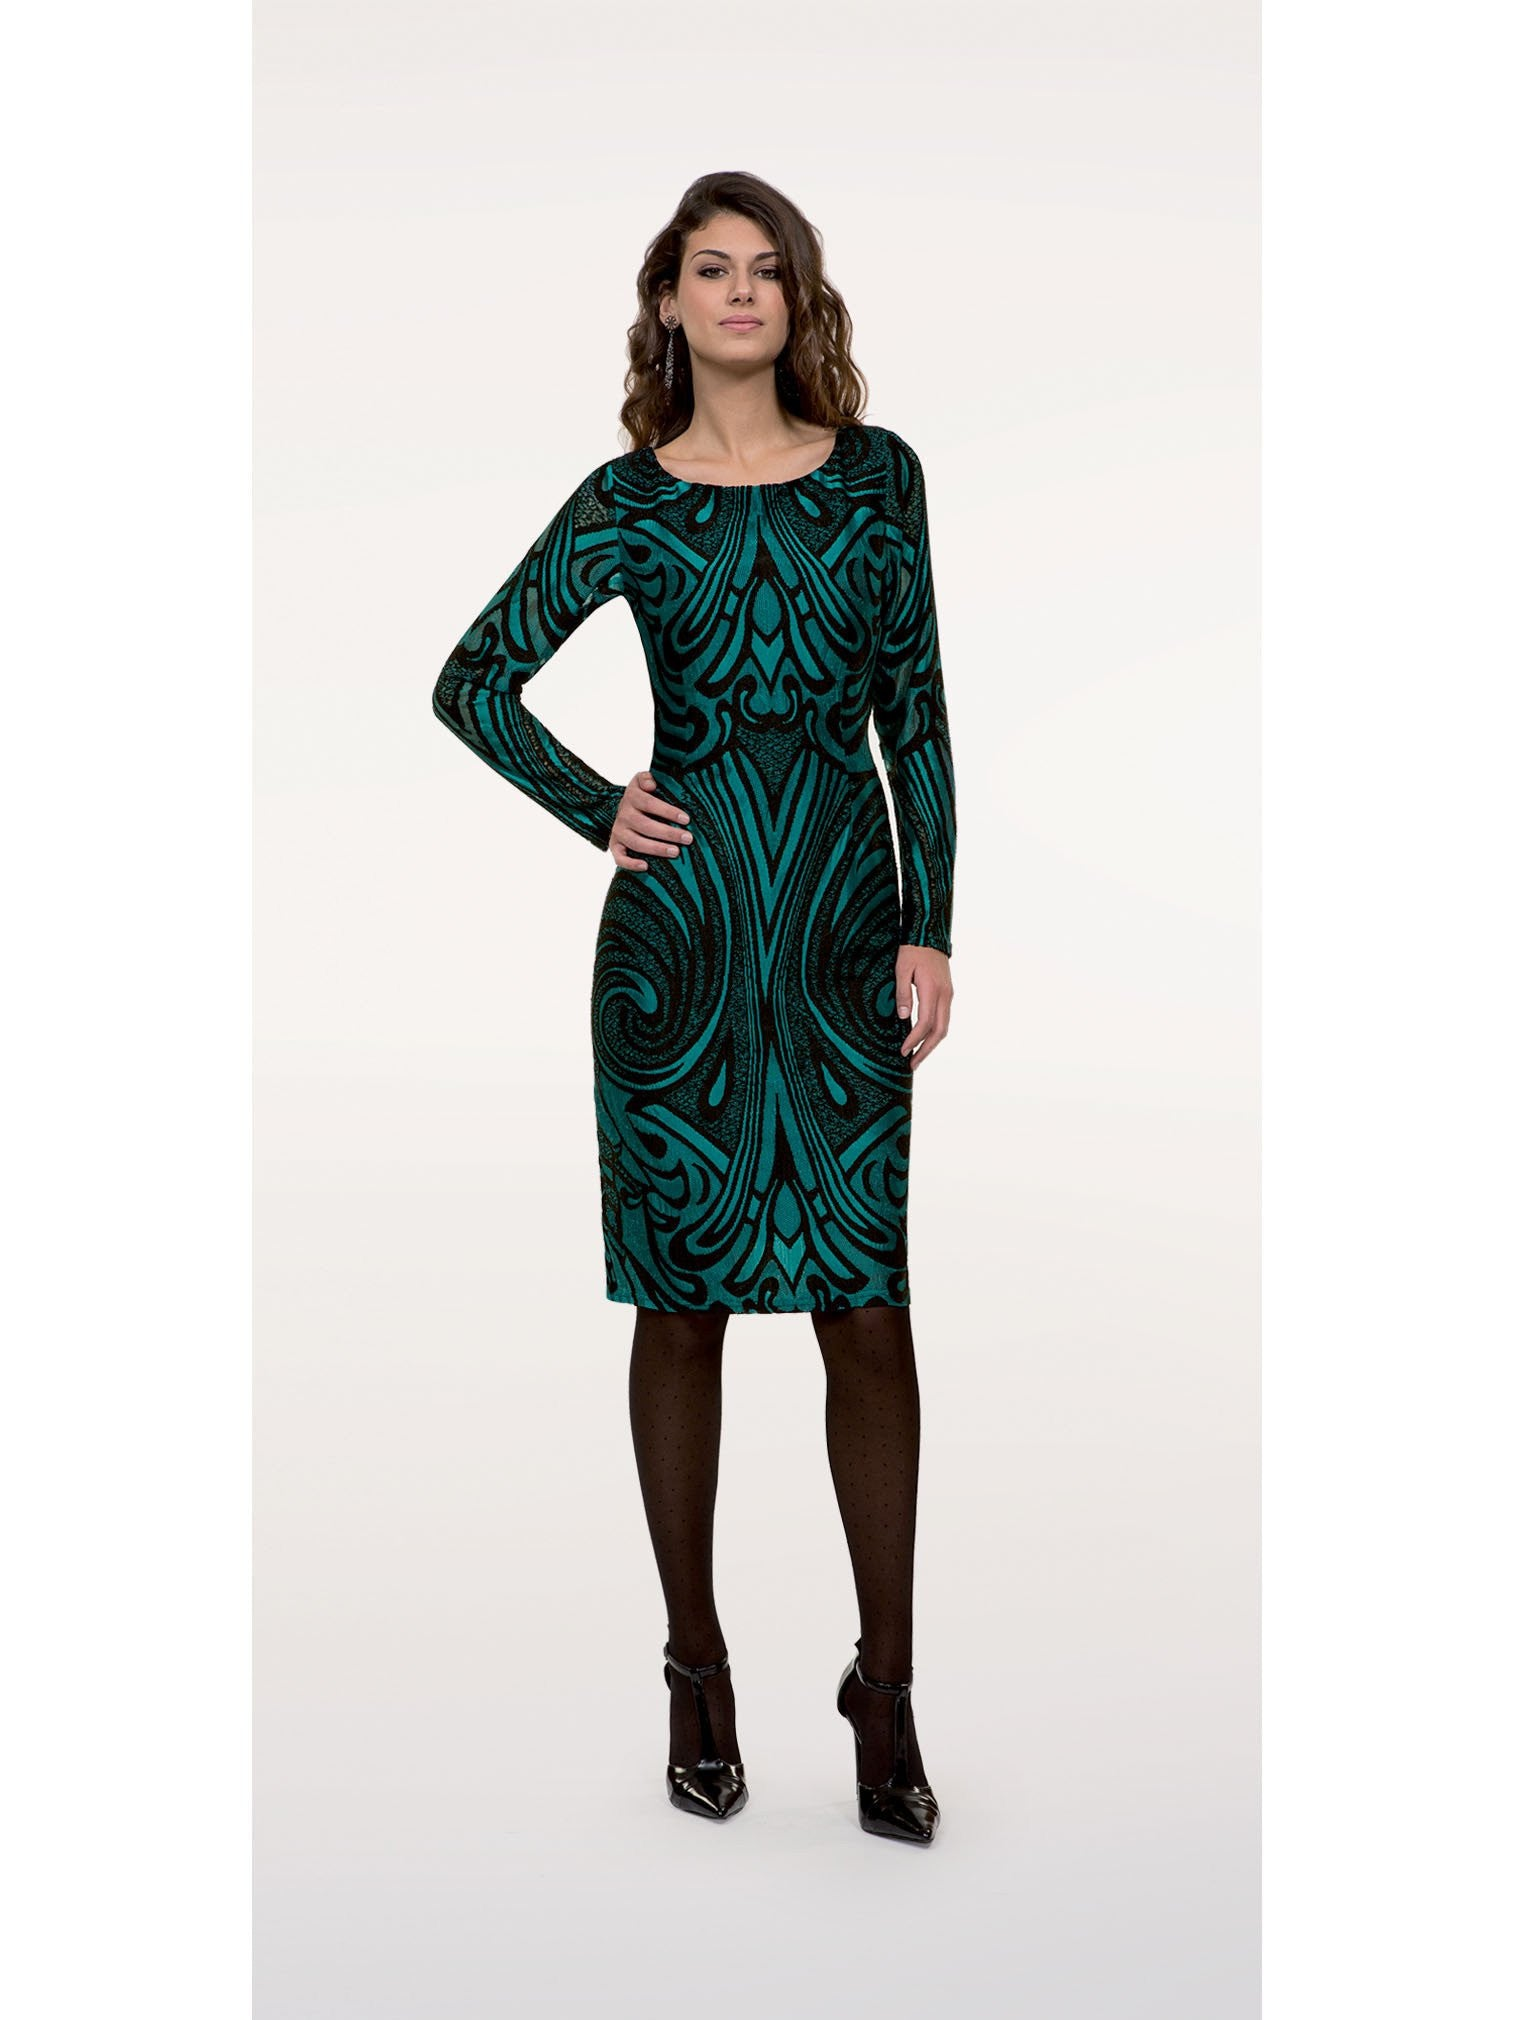 Michaela Louisa Art Deco Stretch Print Dress